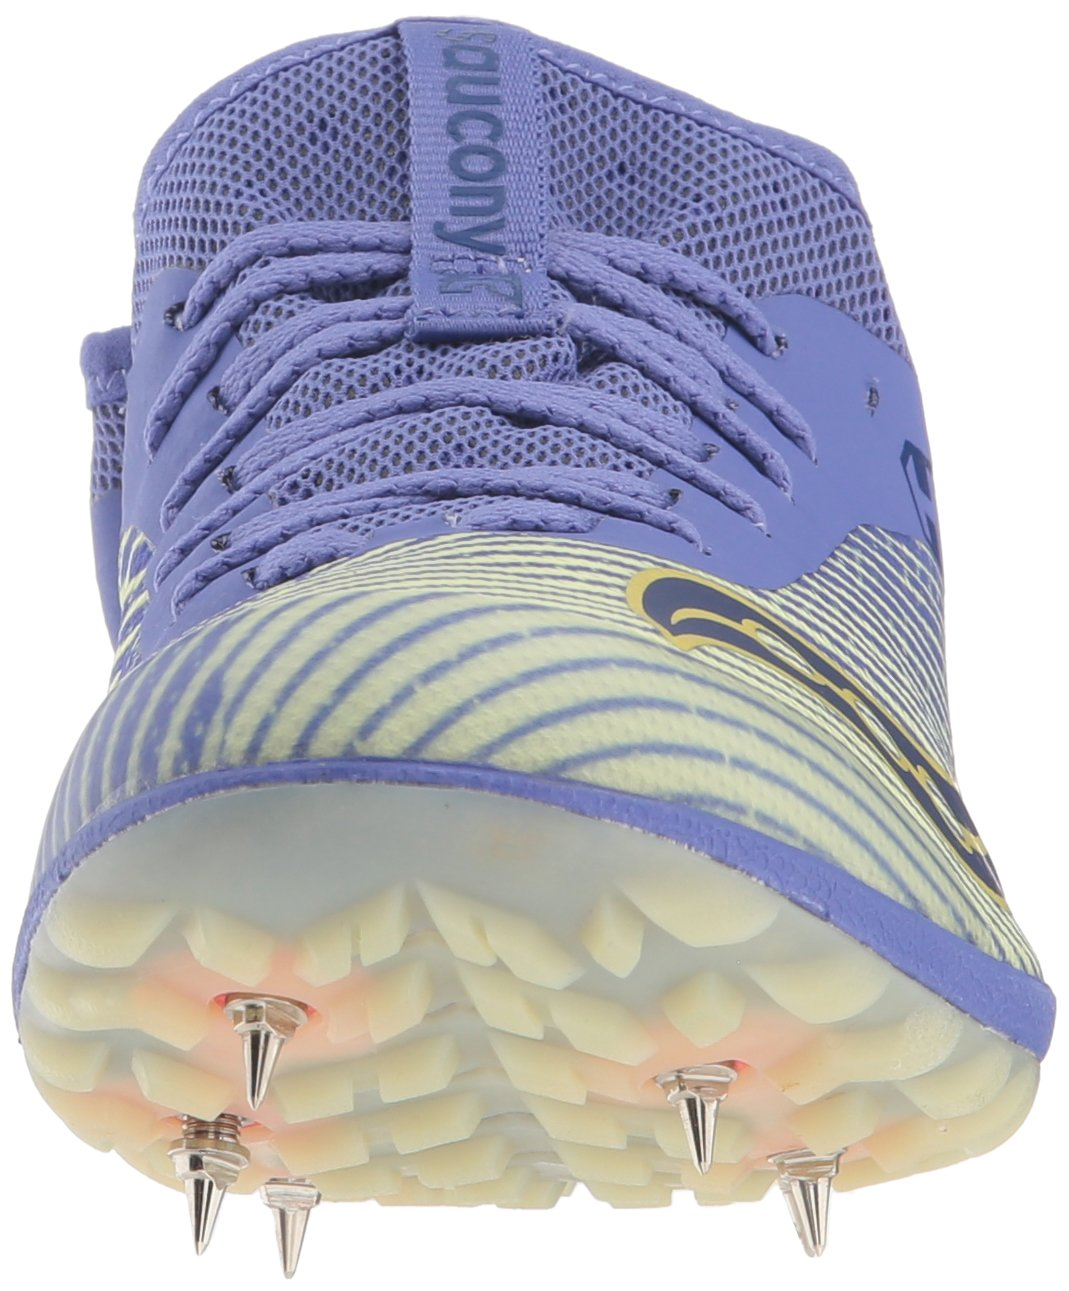 Saucony Women's Havok Xc2 B(M) Track Shoe B076T59FHC 10.5 B(M) Xc2 US|Purple/Yellow 121cfe